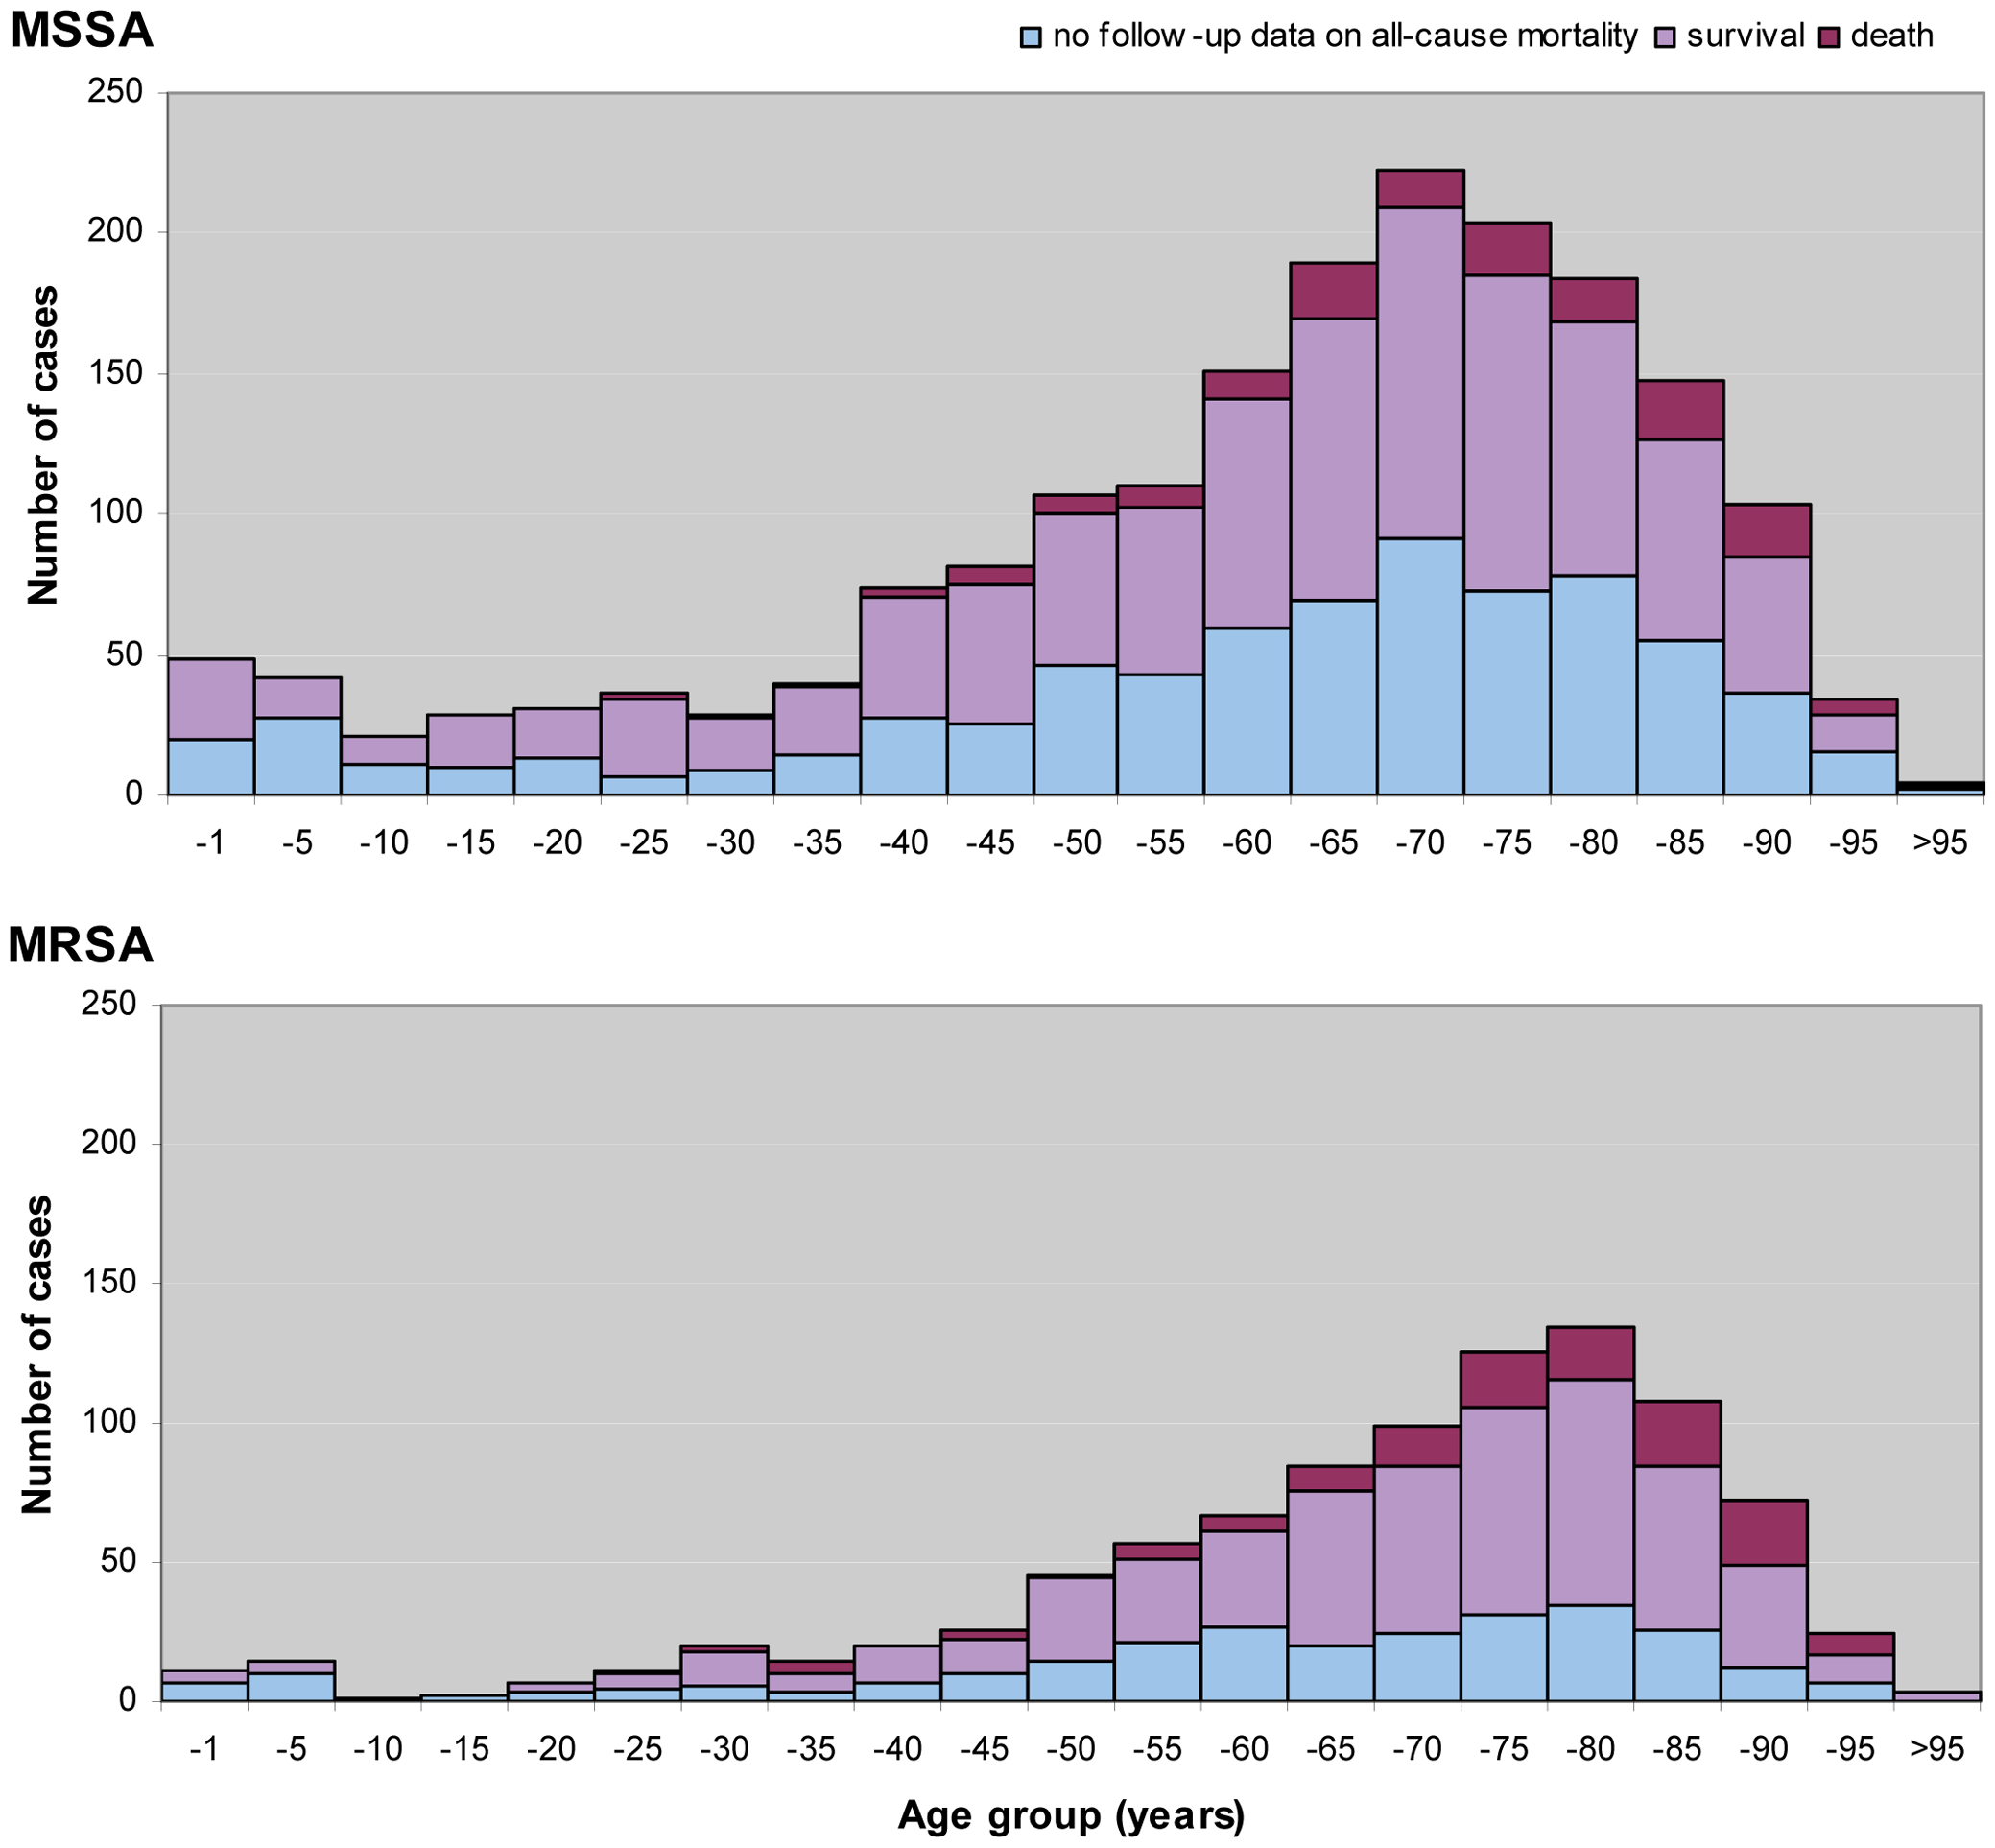 Age distribution and all-cause mortality of patients 14 d after diagnosis of invasive <i>S. aureus</i> infections in Europe.